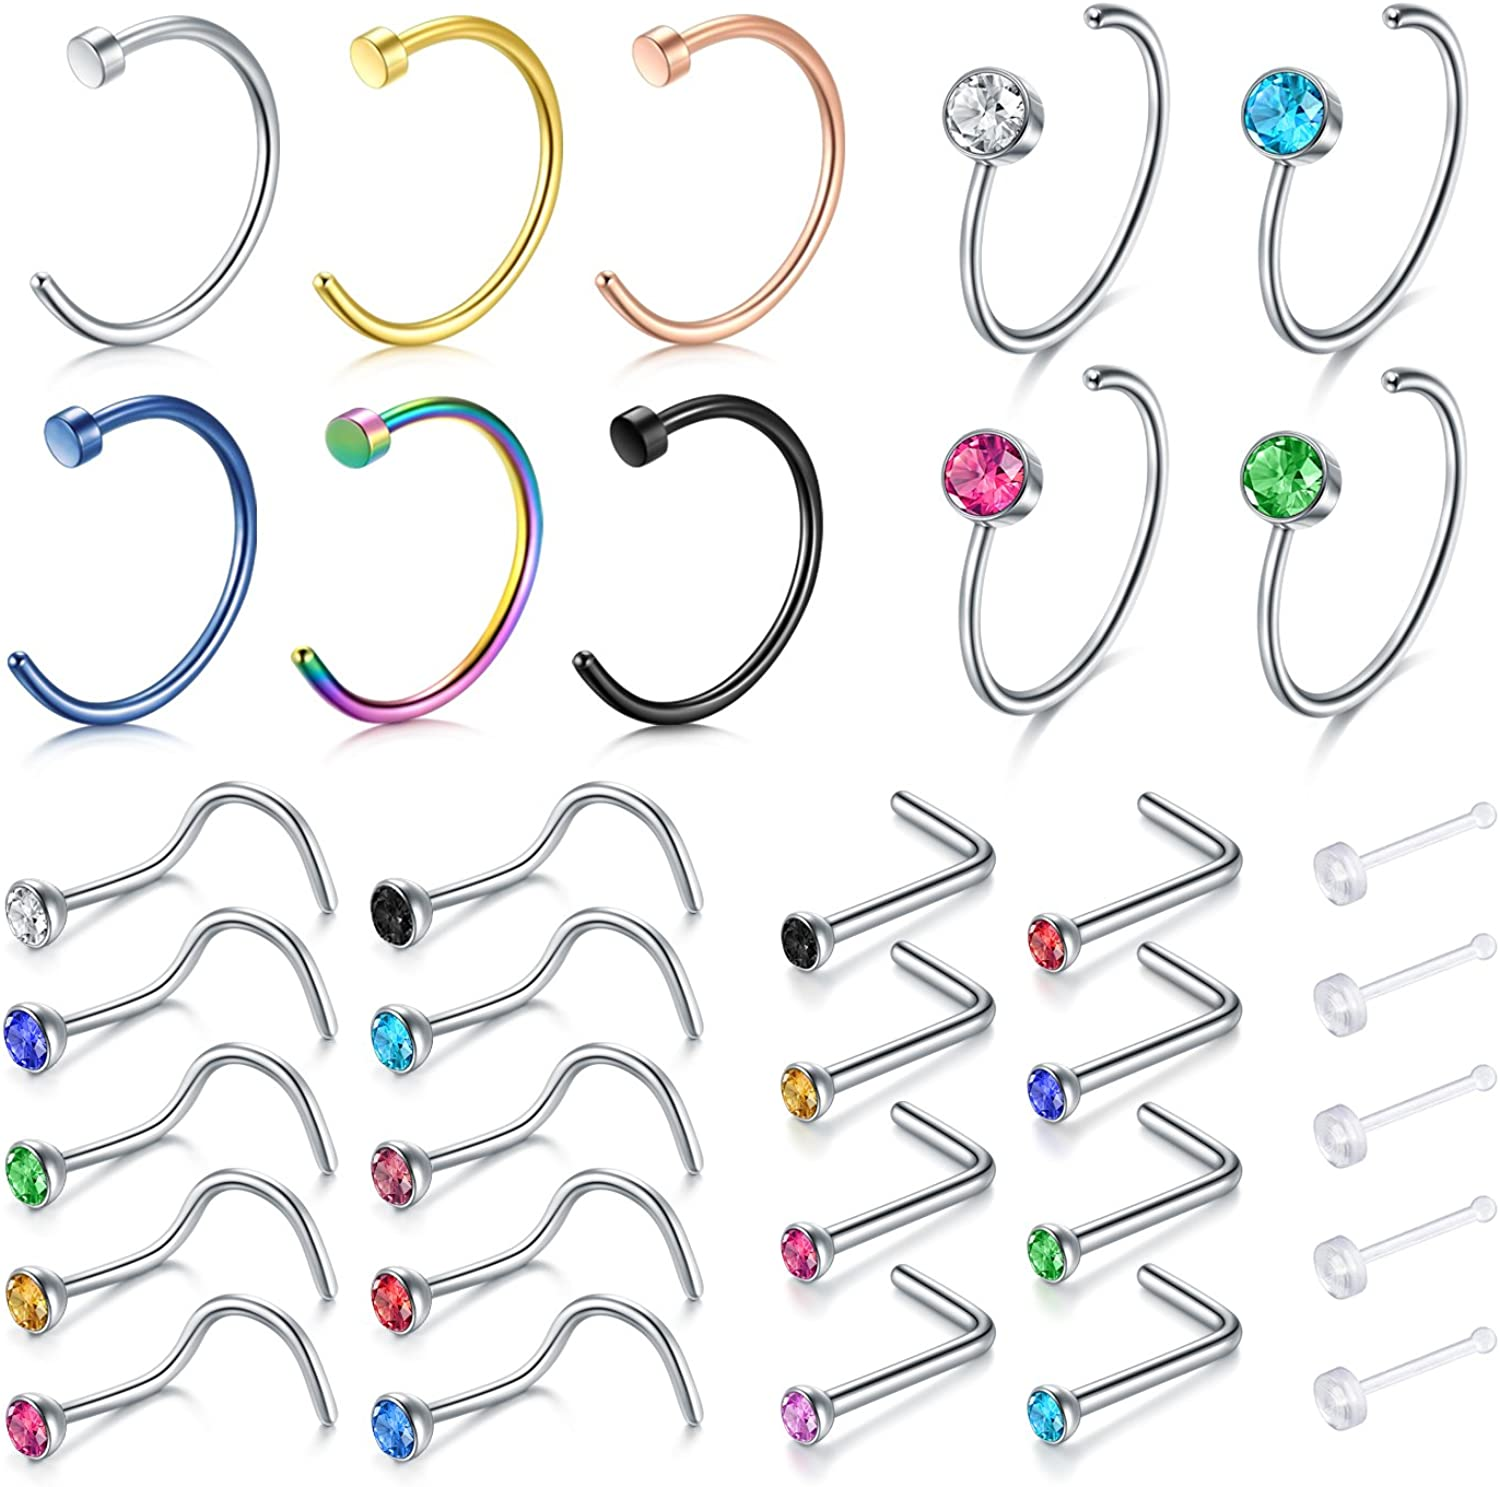 Zolure 18 Gauge Nose Rings Hoop Nose Screw Studs Set Stainless Steel Fake Nose Piercing Jewellery 16-28PCS